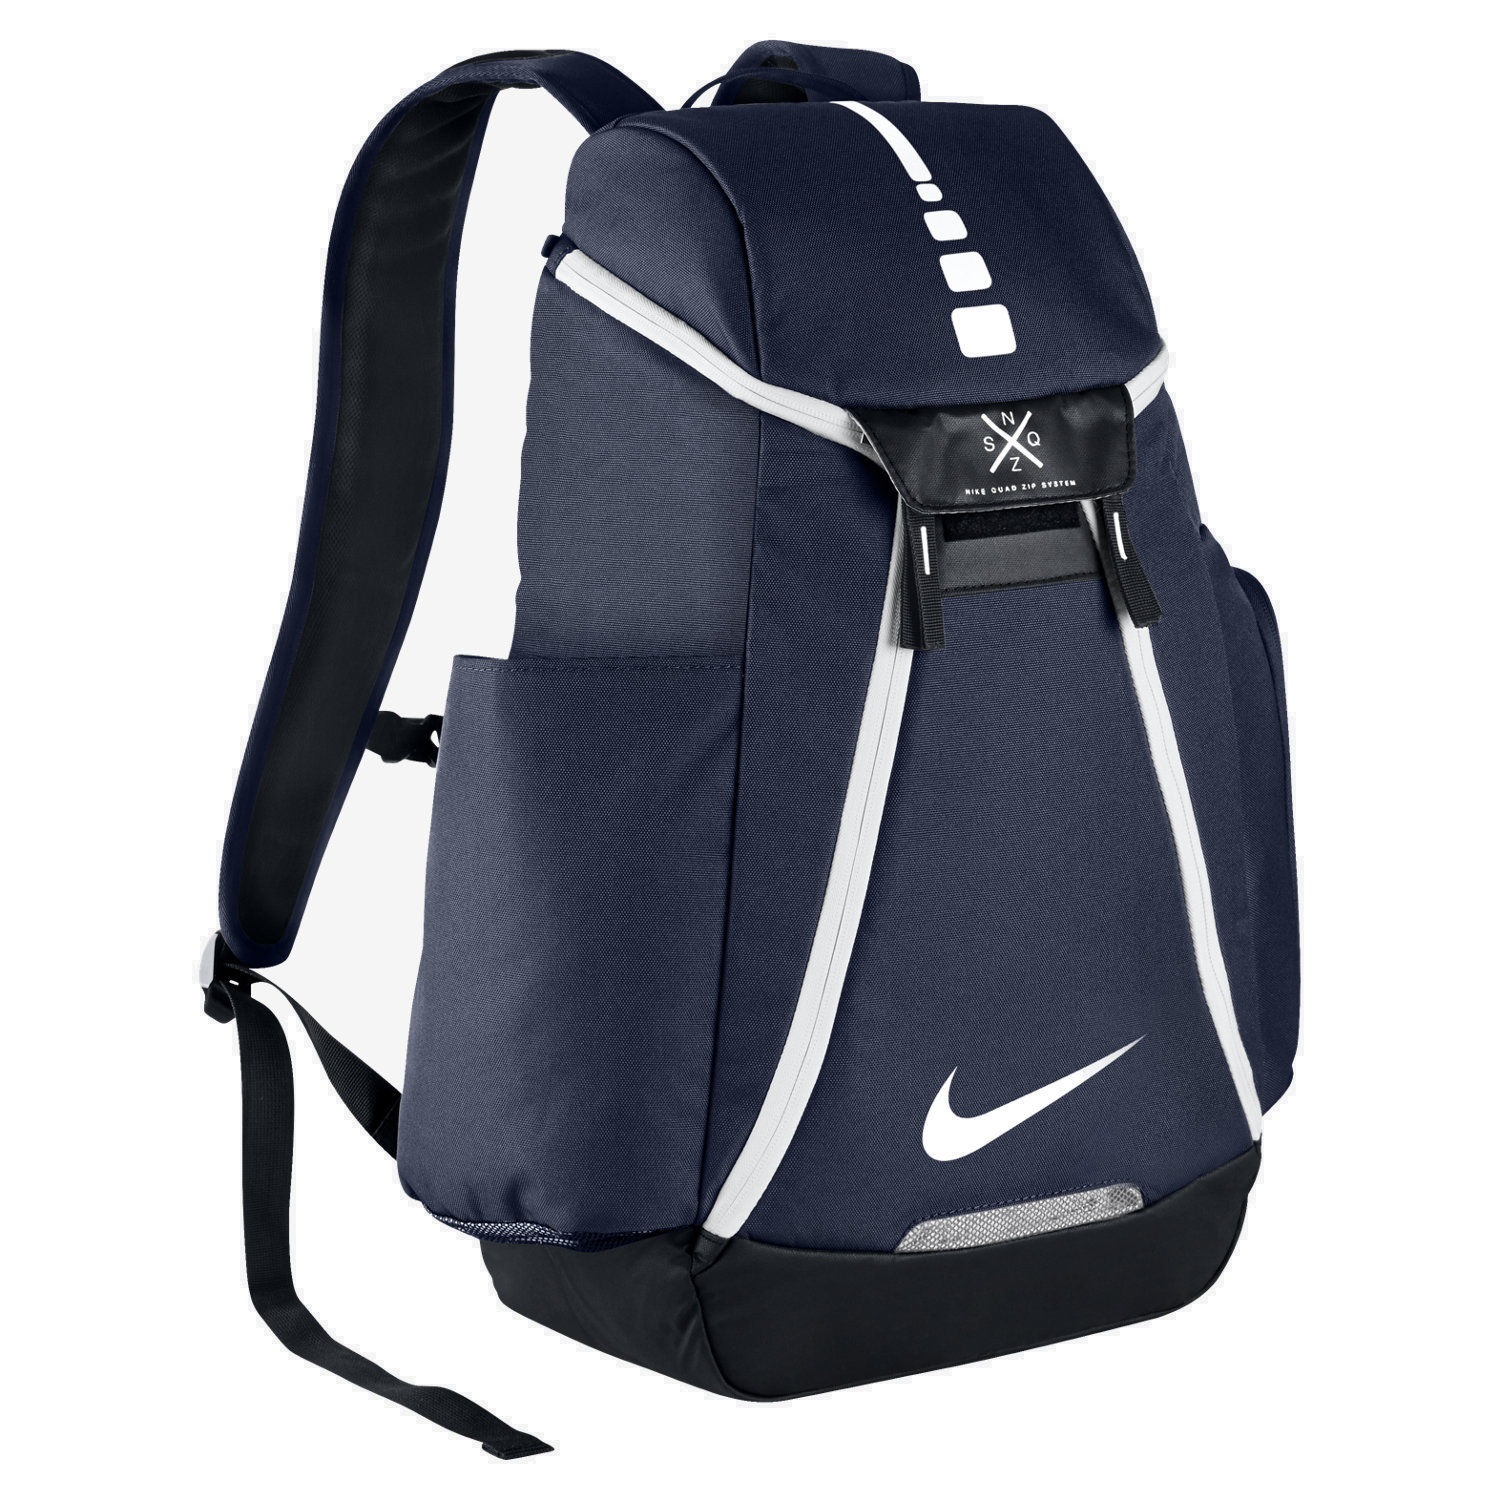 aa0d1abe83e2 Basketball Backpack - NIKE HOOPS ELITE MAX AIR - Customized Paradise